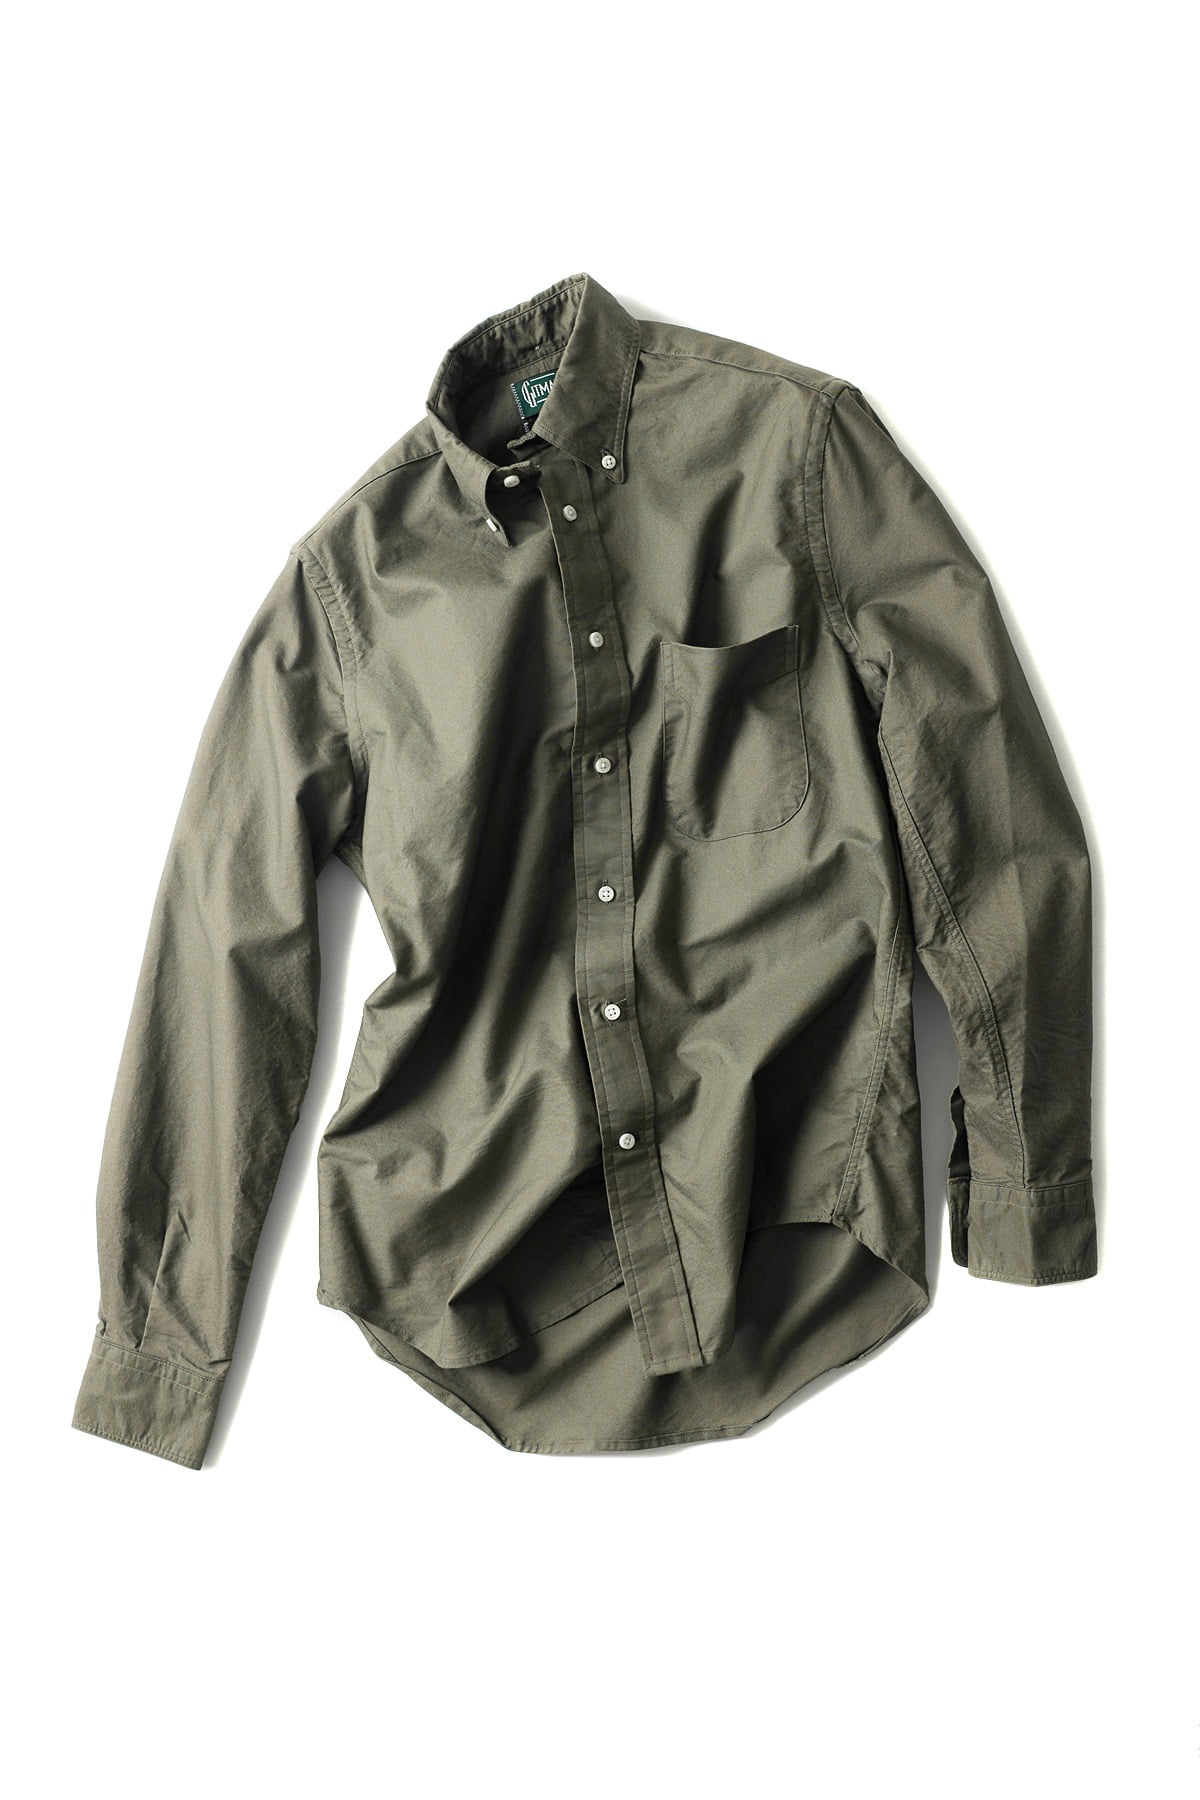 GITMANBROS : Vintage Button Down Shirt (Olive Drab)